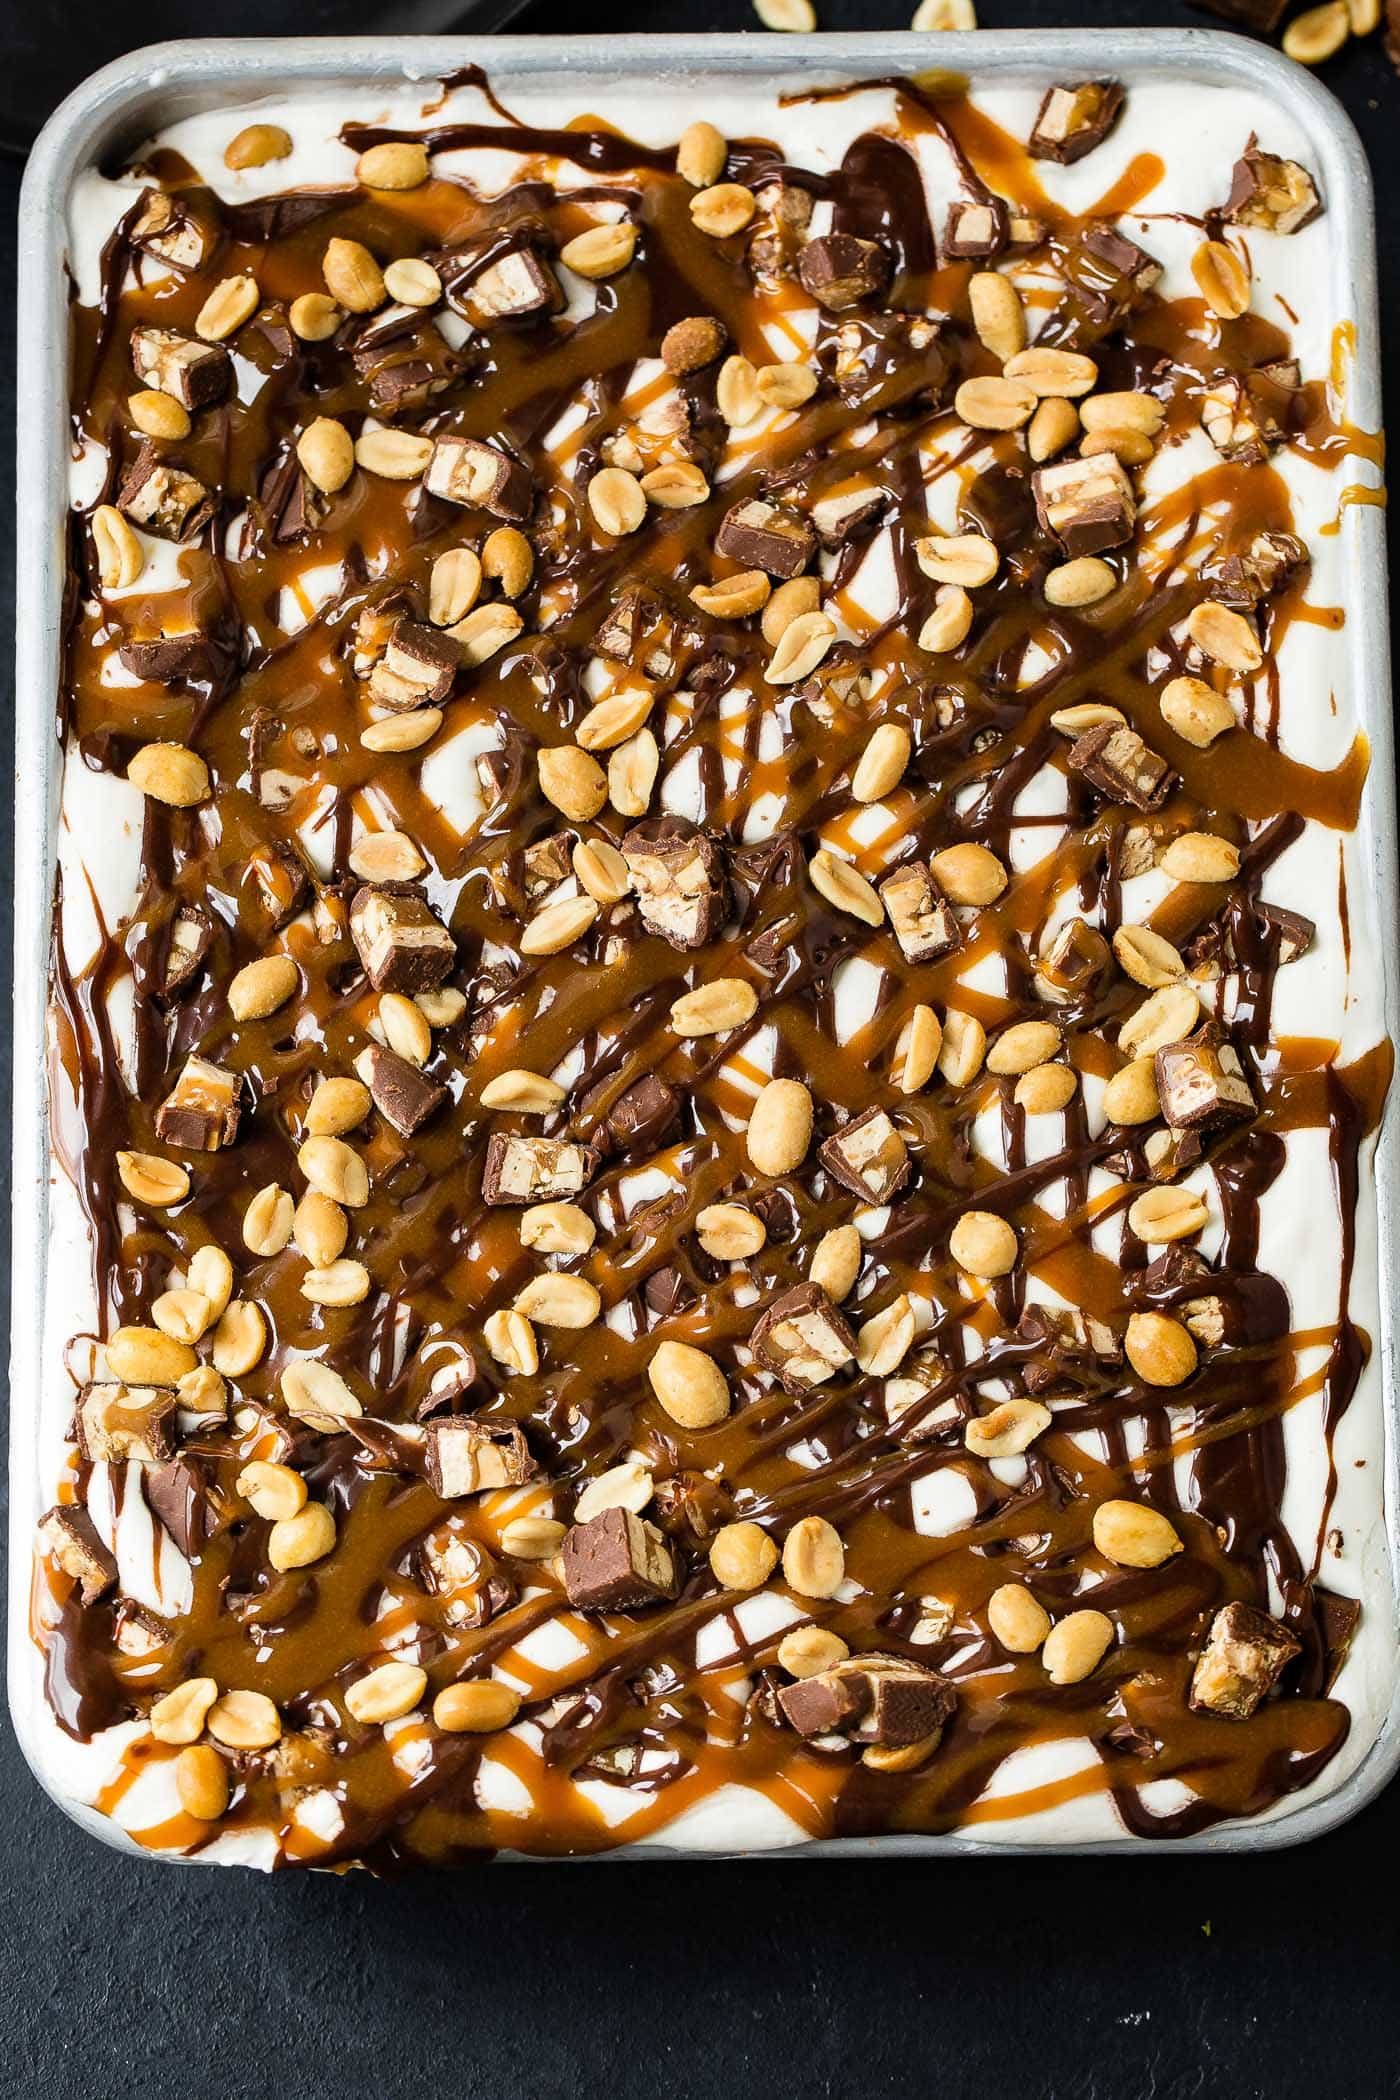 A pan of snickers ice cream cake. The top is covered with whipped cream, hot fudge, drizzles of caramel sauce, chopped snickers bars and salted peanuts